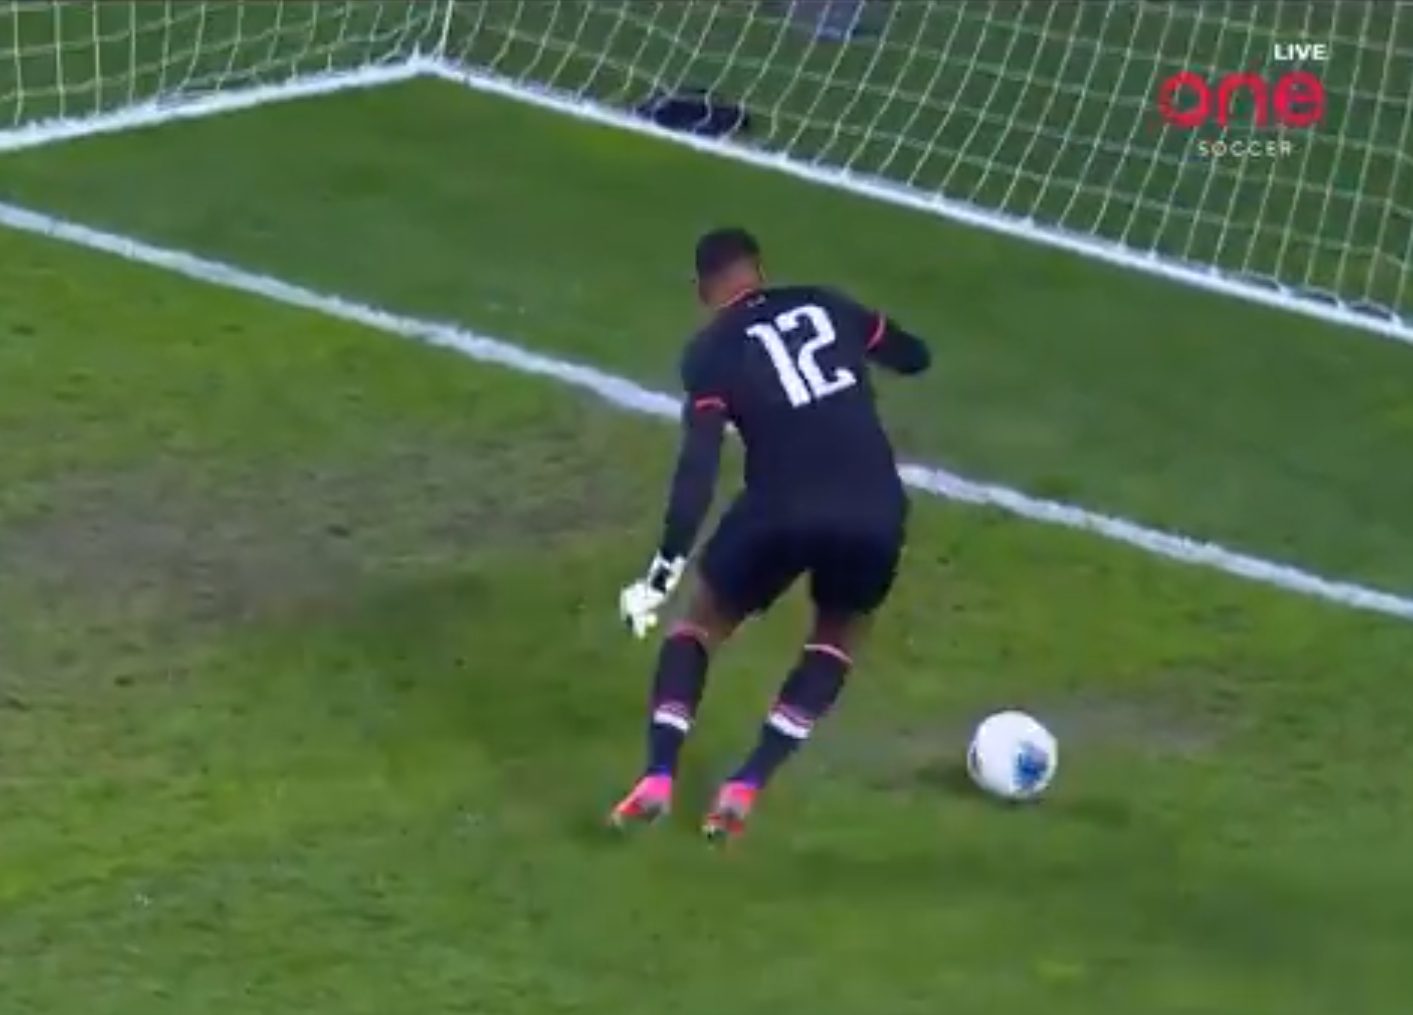 Haiti keeper's wild blunder hands Canada an absurd goal in World Cup qualifying